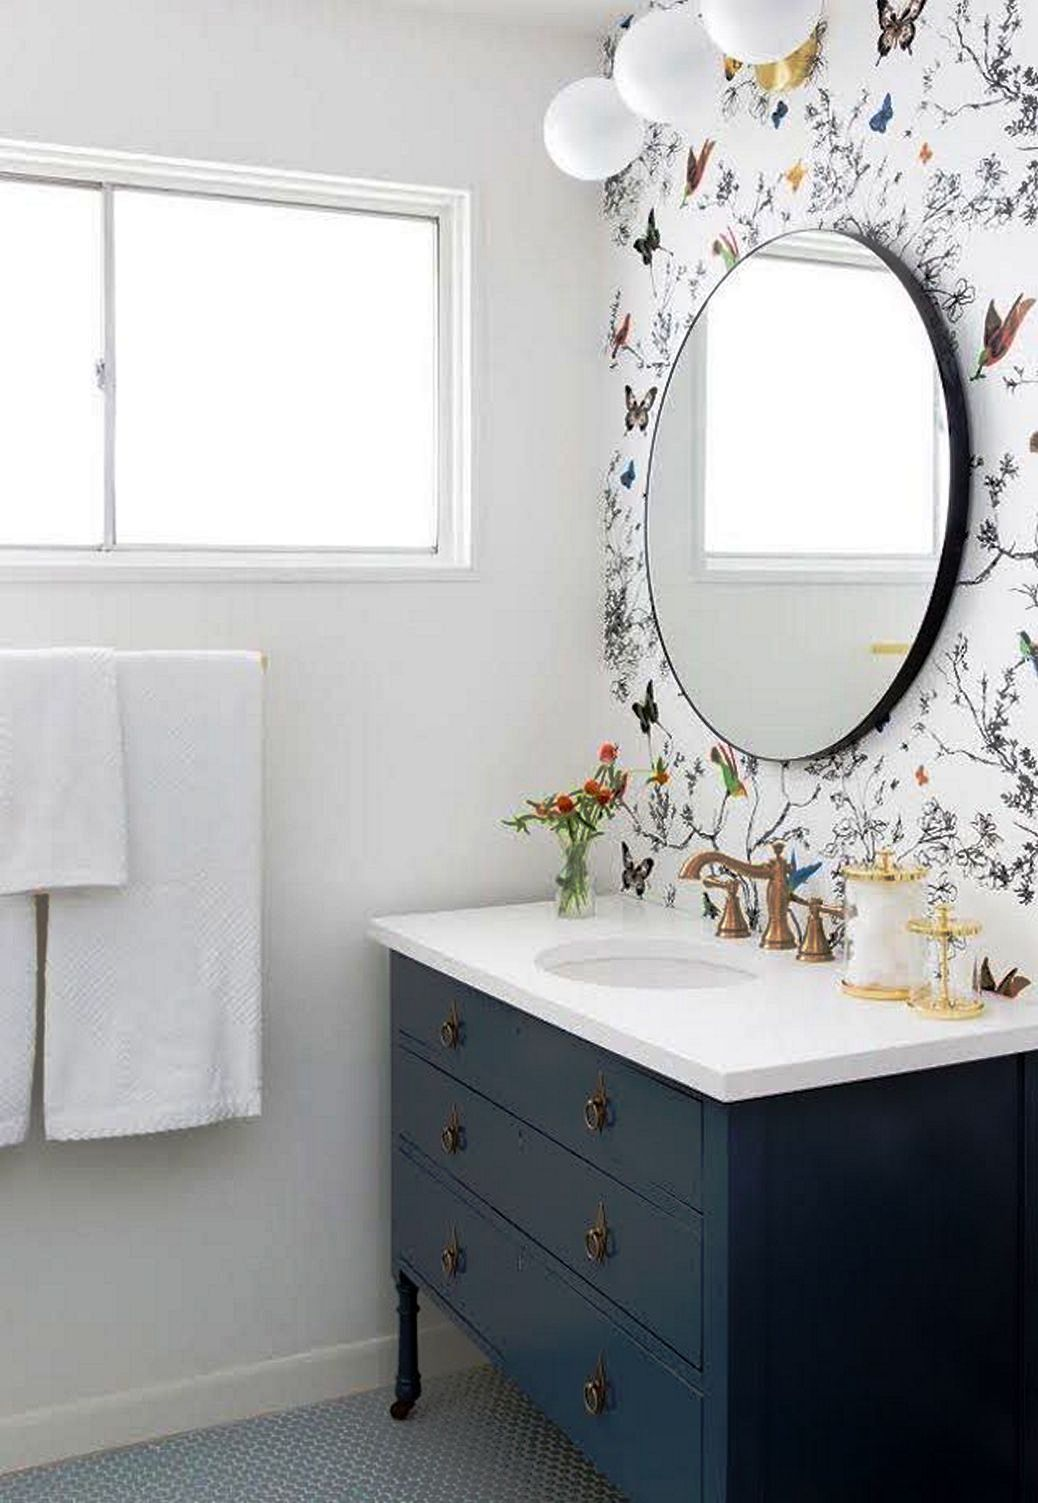 Bathroom trends 2021 the perfect new look for your bathroom remodeling 24